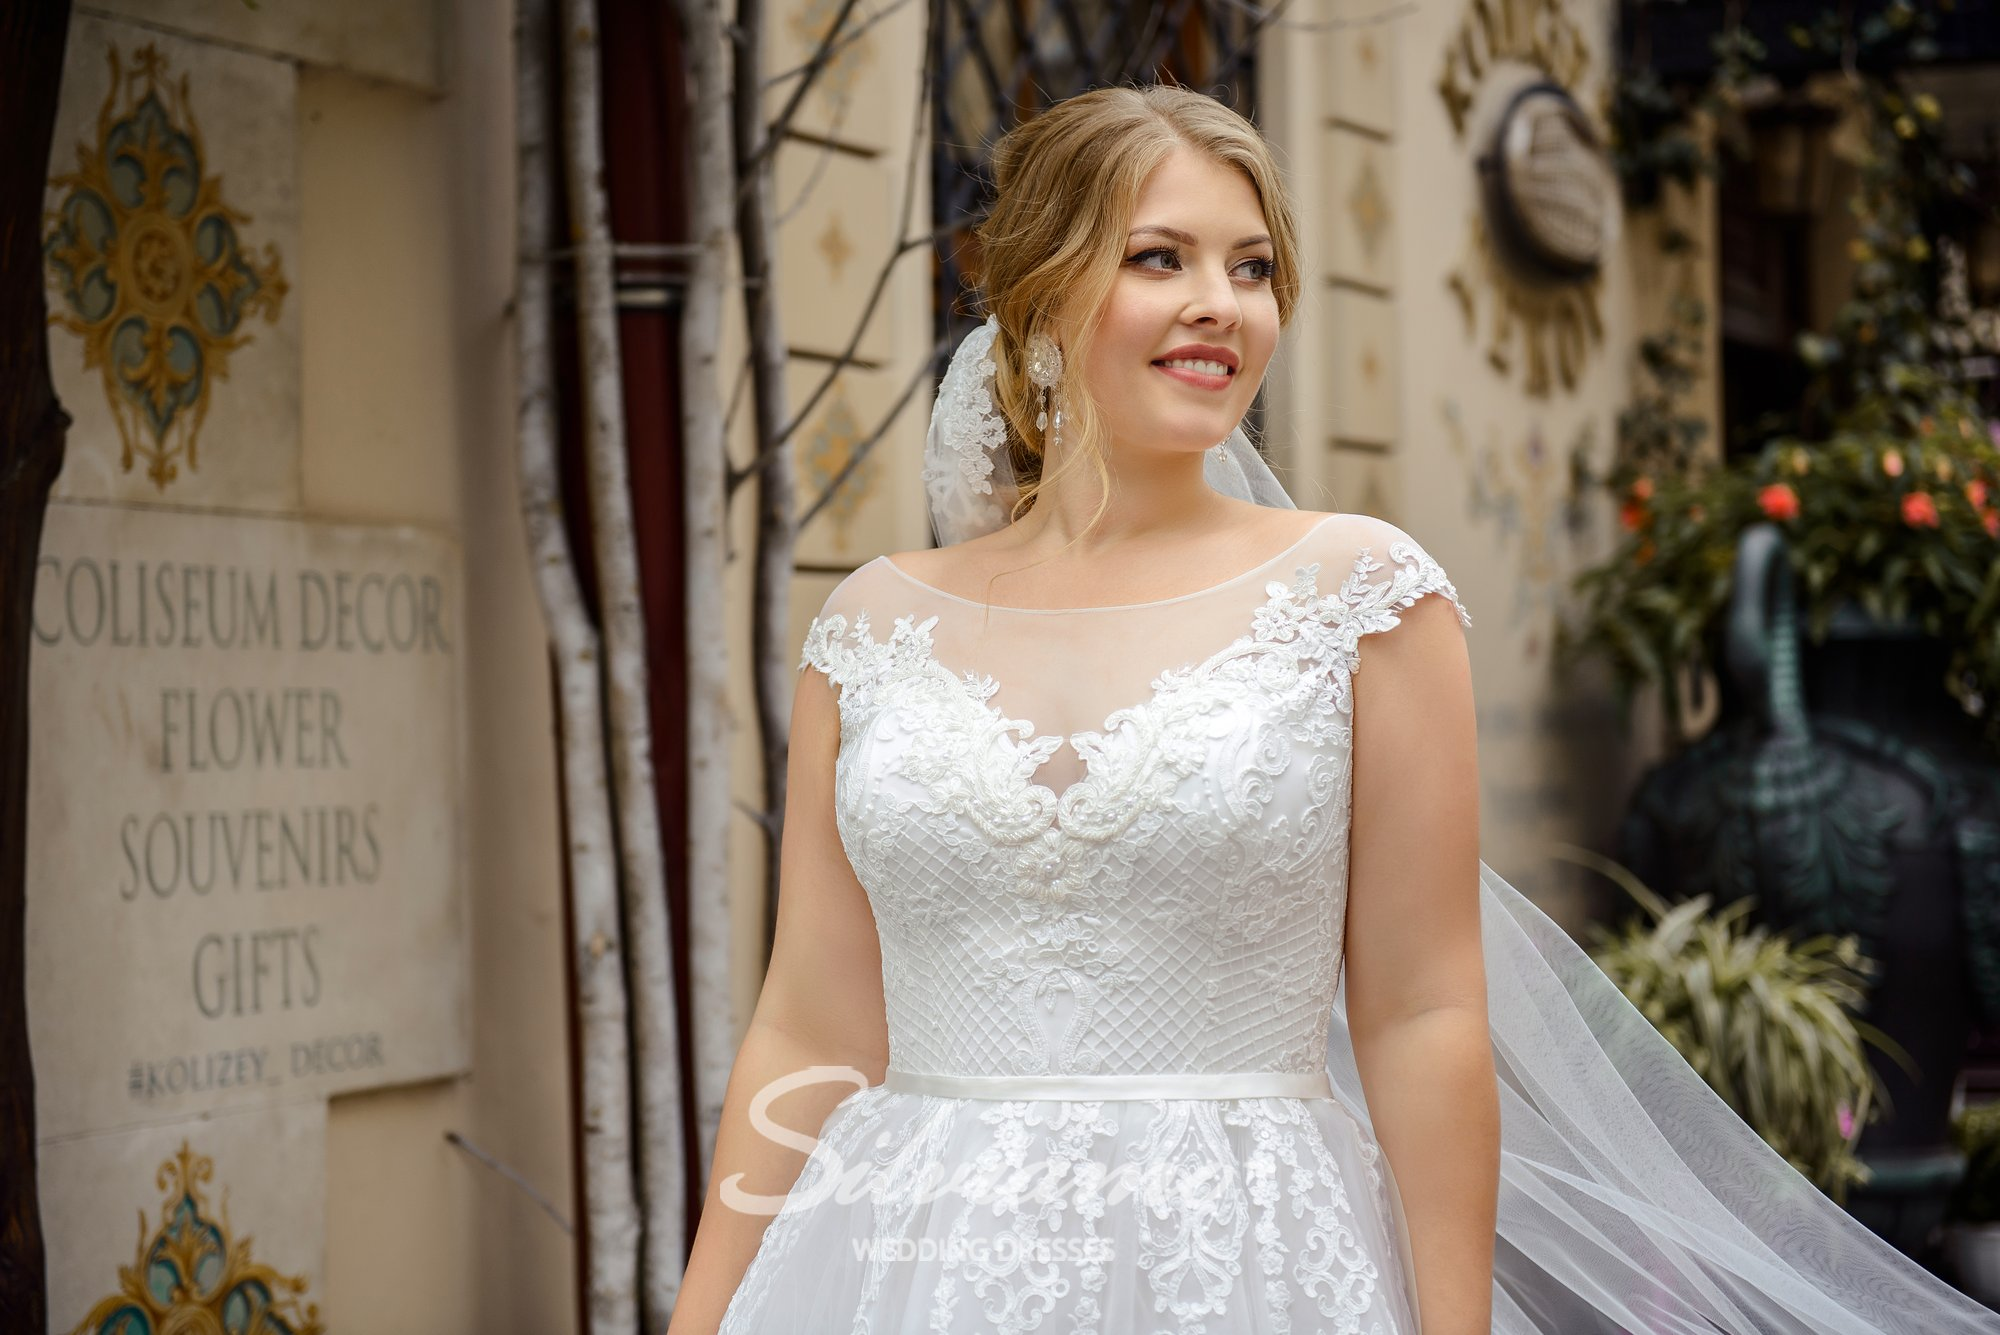 plus size wedding dresses, buy wholesale, from the manufacturer, Silviamo, Plus size, wedding dresses for curvy, Ivory, on a yoke, bateau neckline, for curvy brides, buy wholesale, delivery, countries, online-1